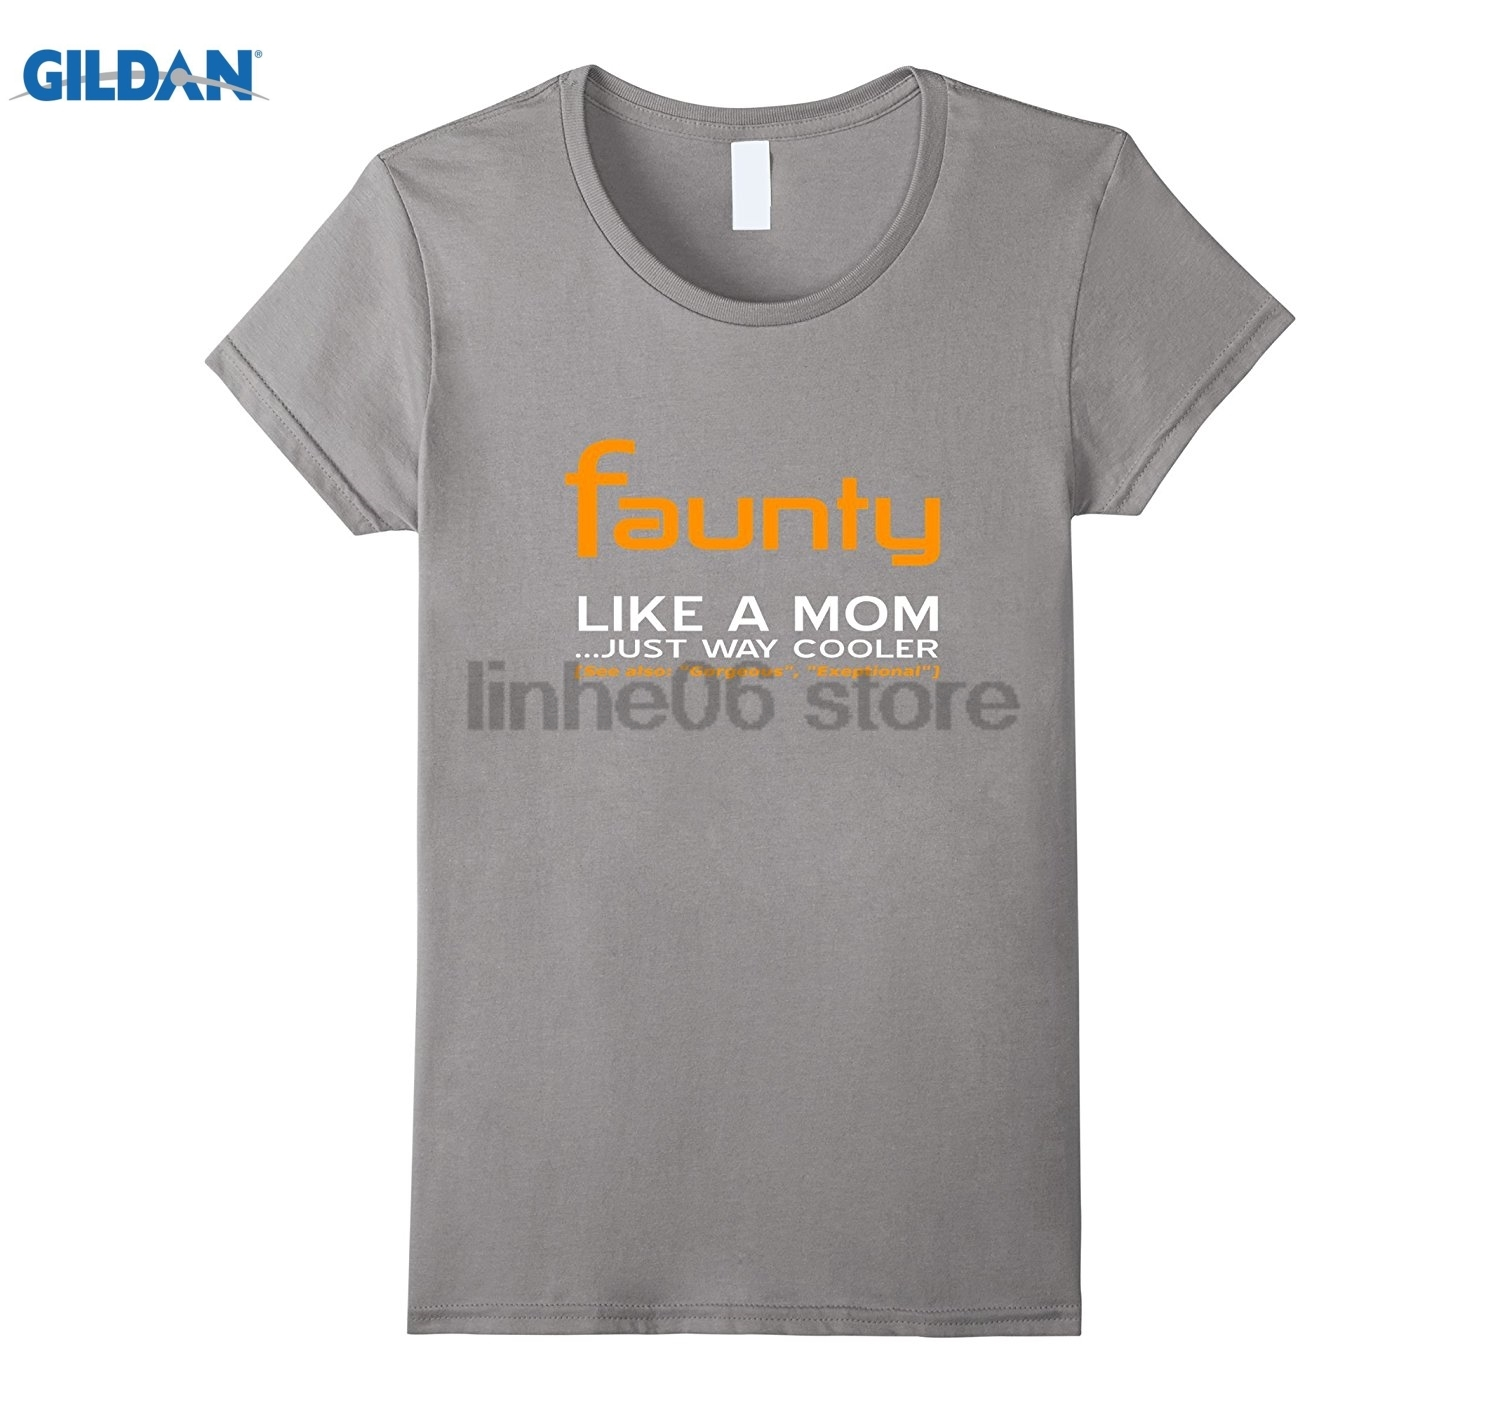 GILDAN Funny Aunty Faunty Definition and Halloween T-Shirt dress T-shirt